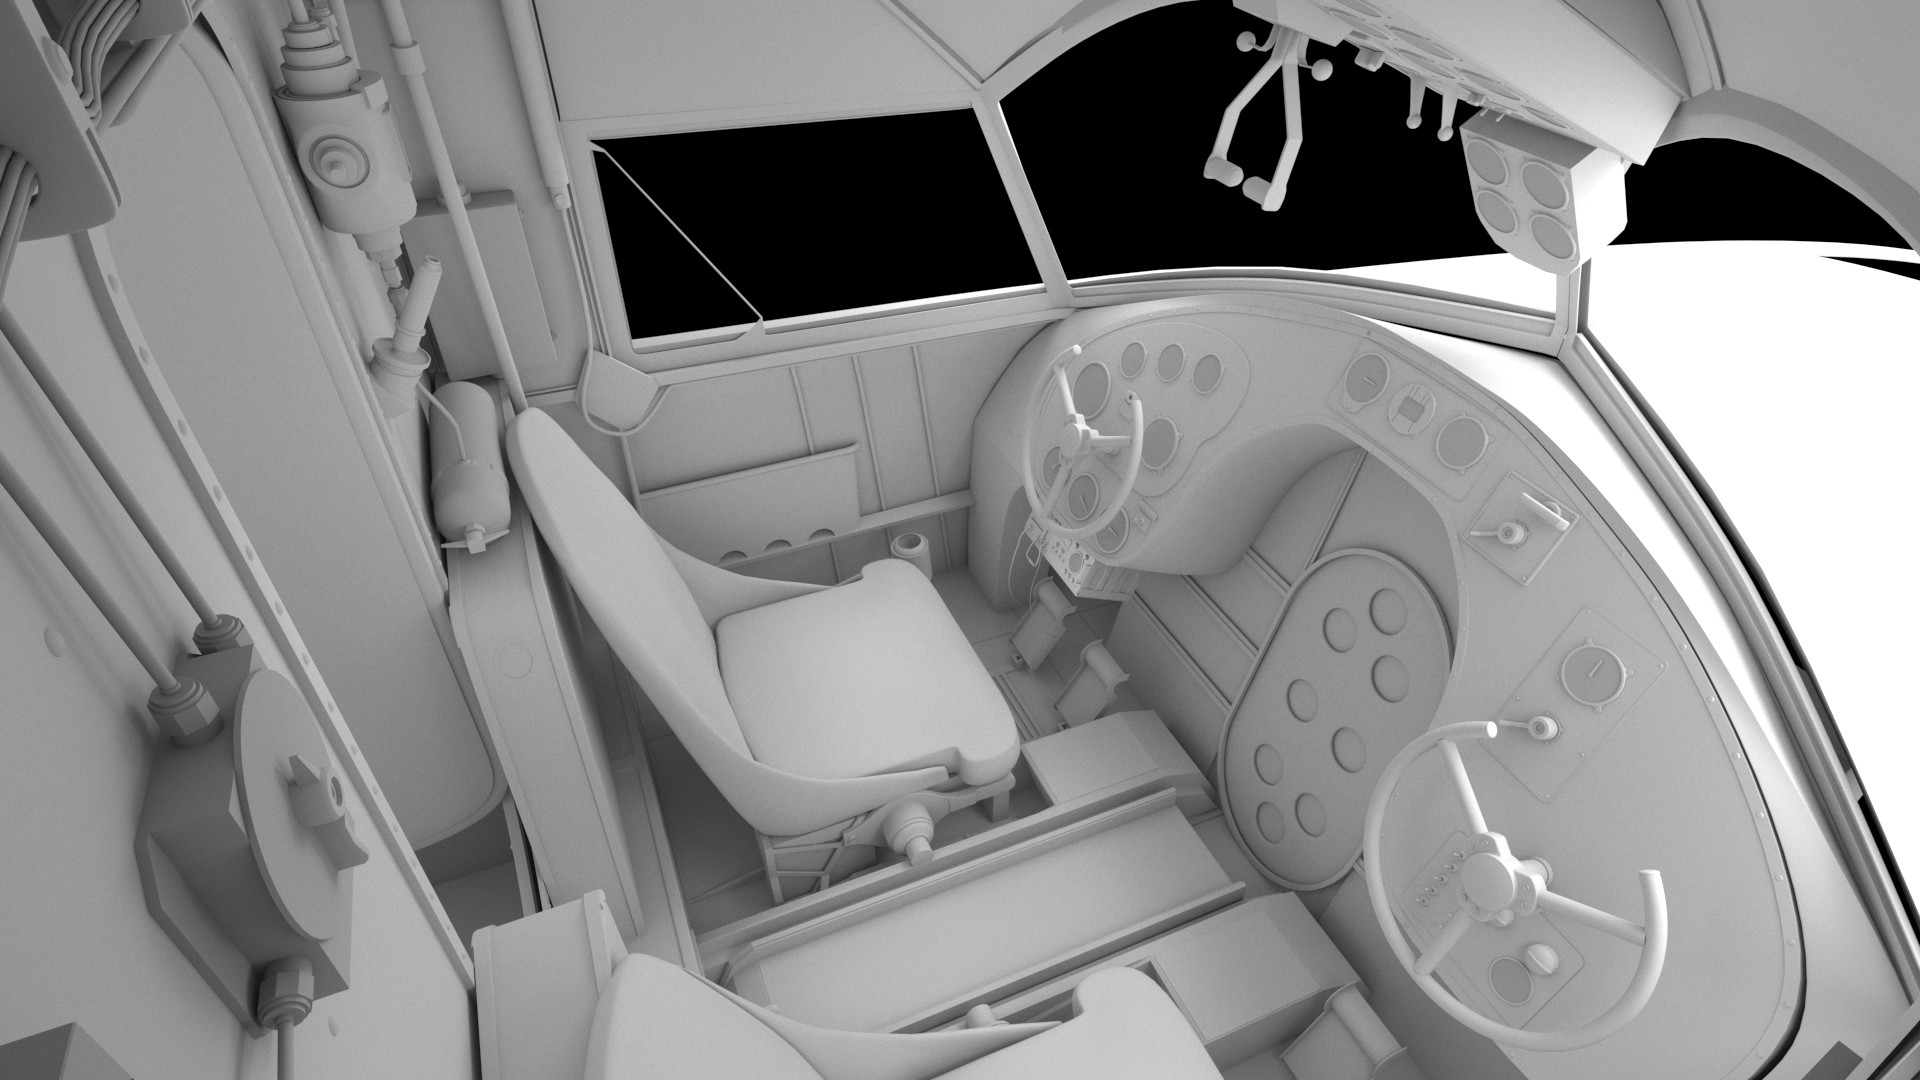 ArtStation - Grumman Goose Interior: ARCHER DANGER ISLAND, Chris